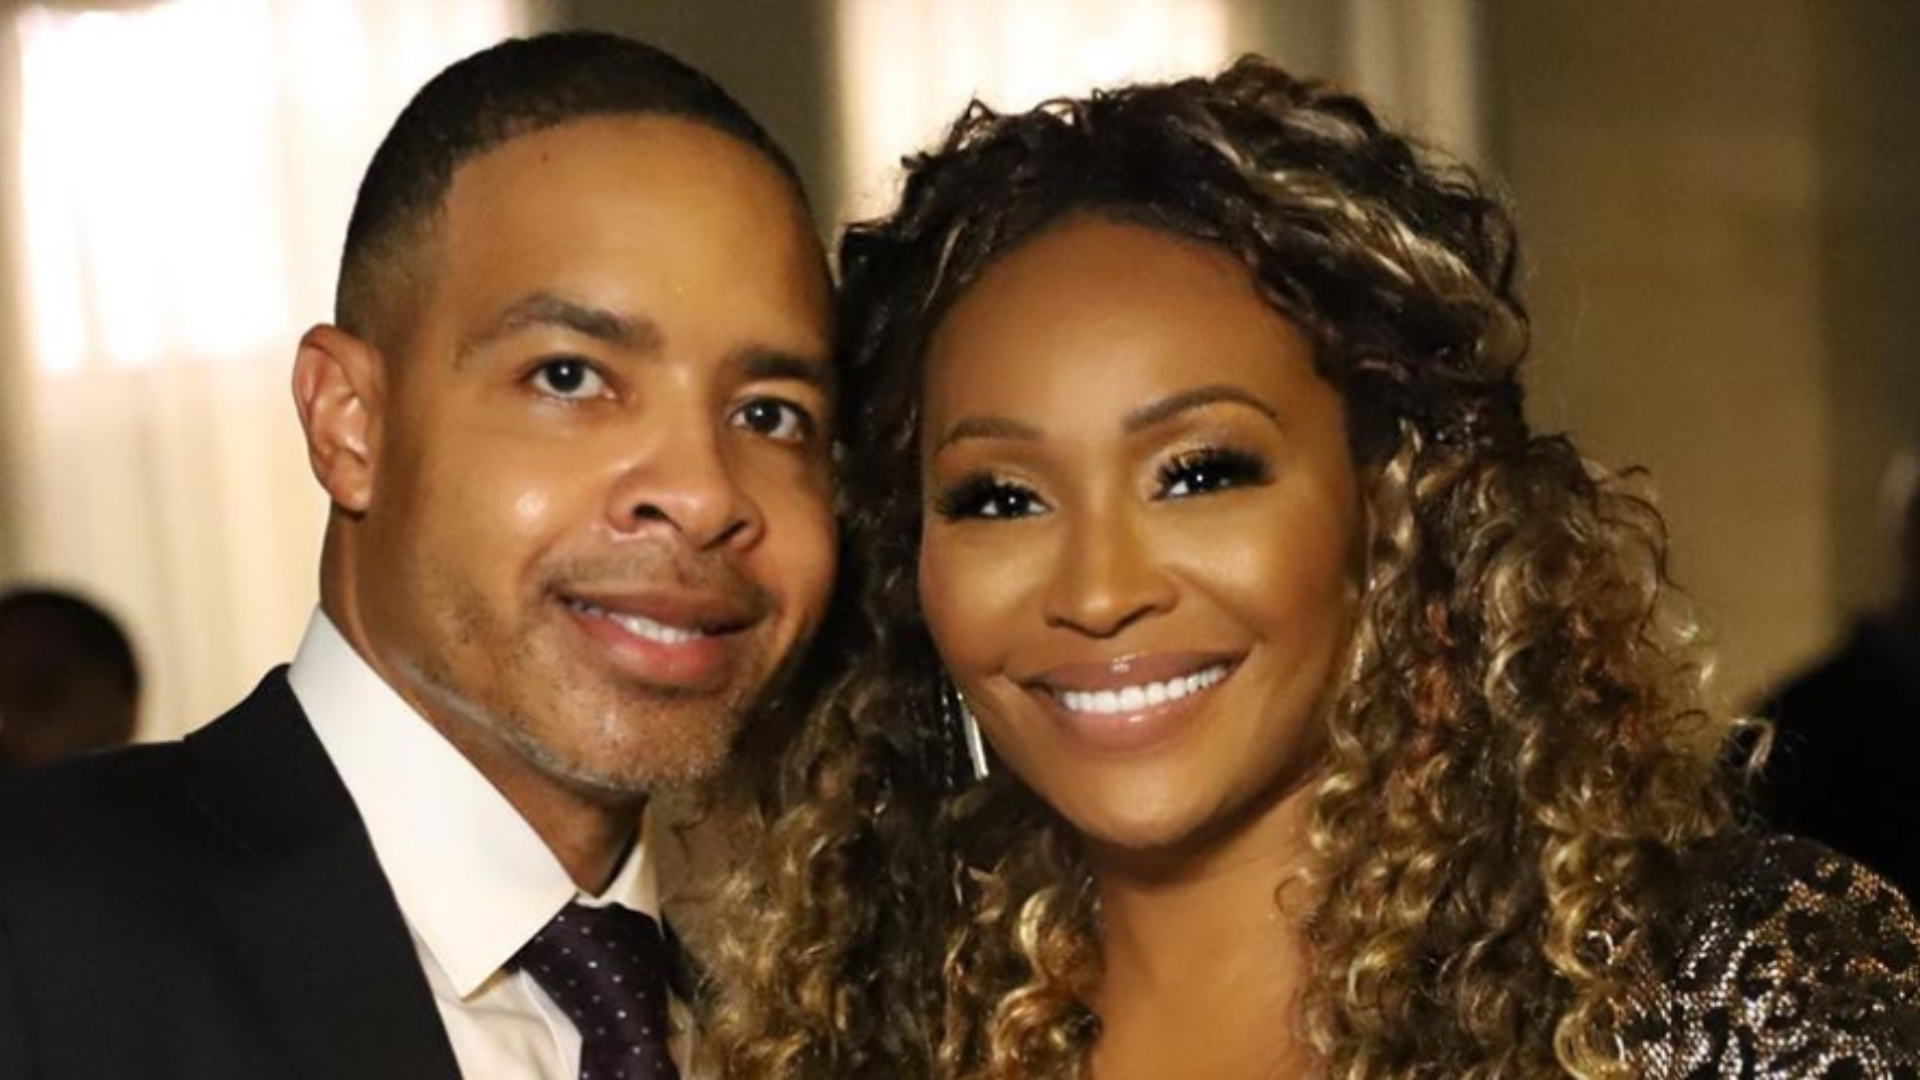 Cynthia Bailey Tells Fans The Latest RHOA Episode Had Her Emotional